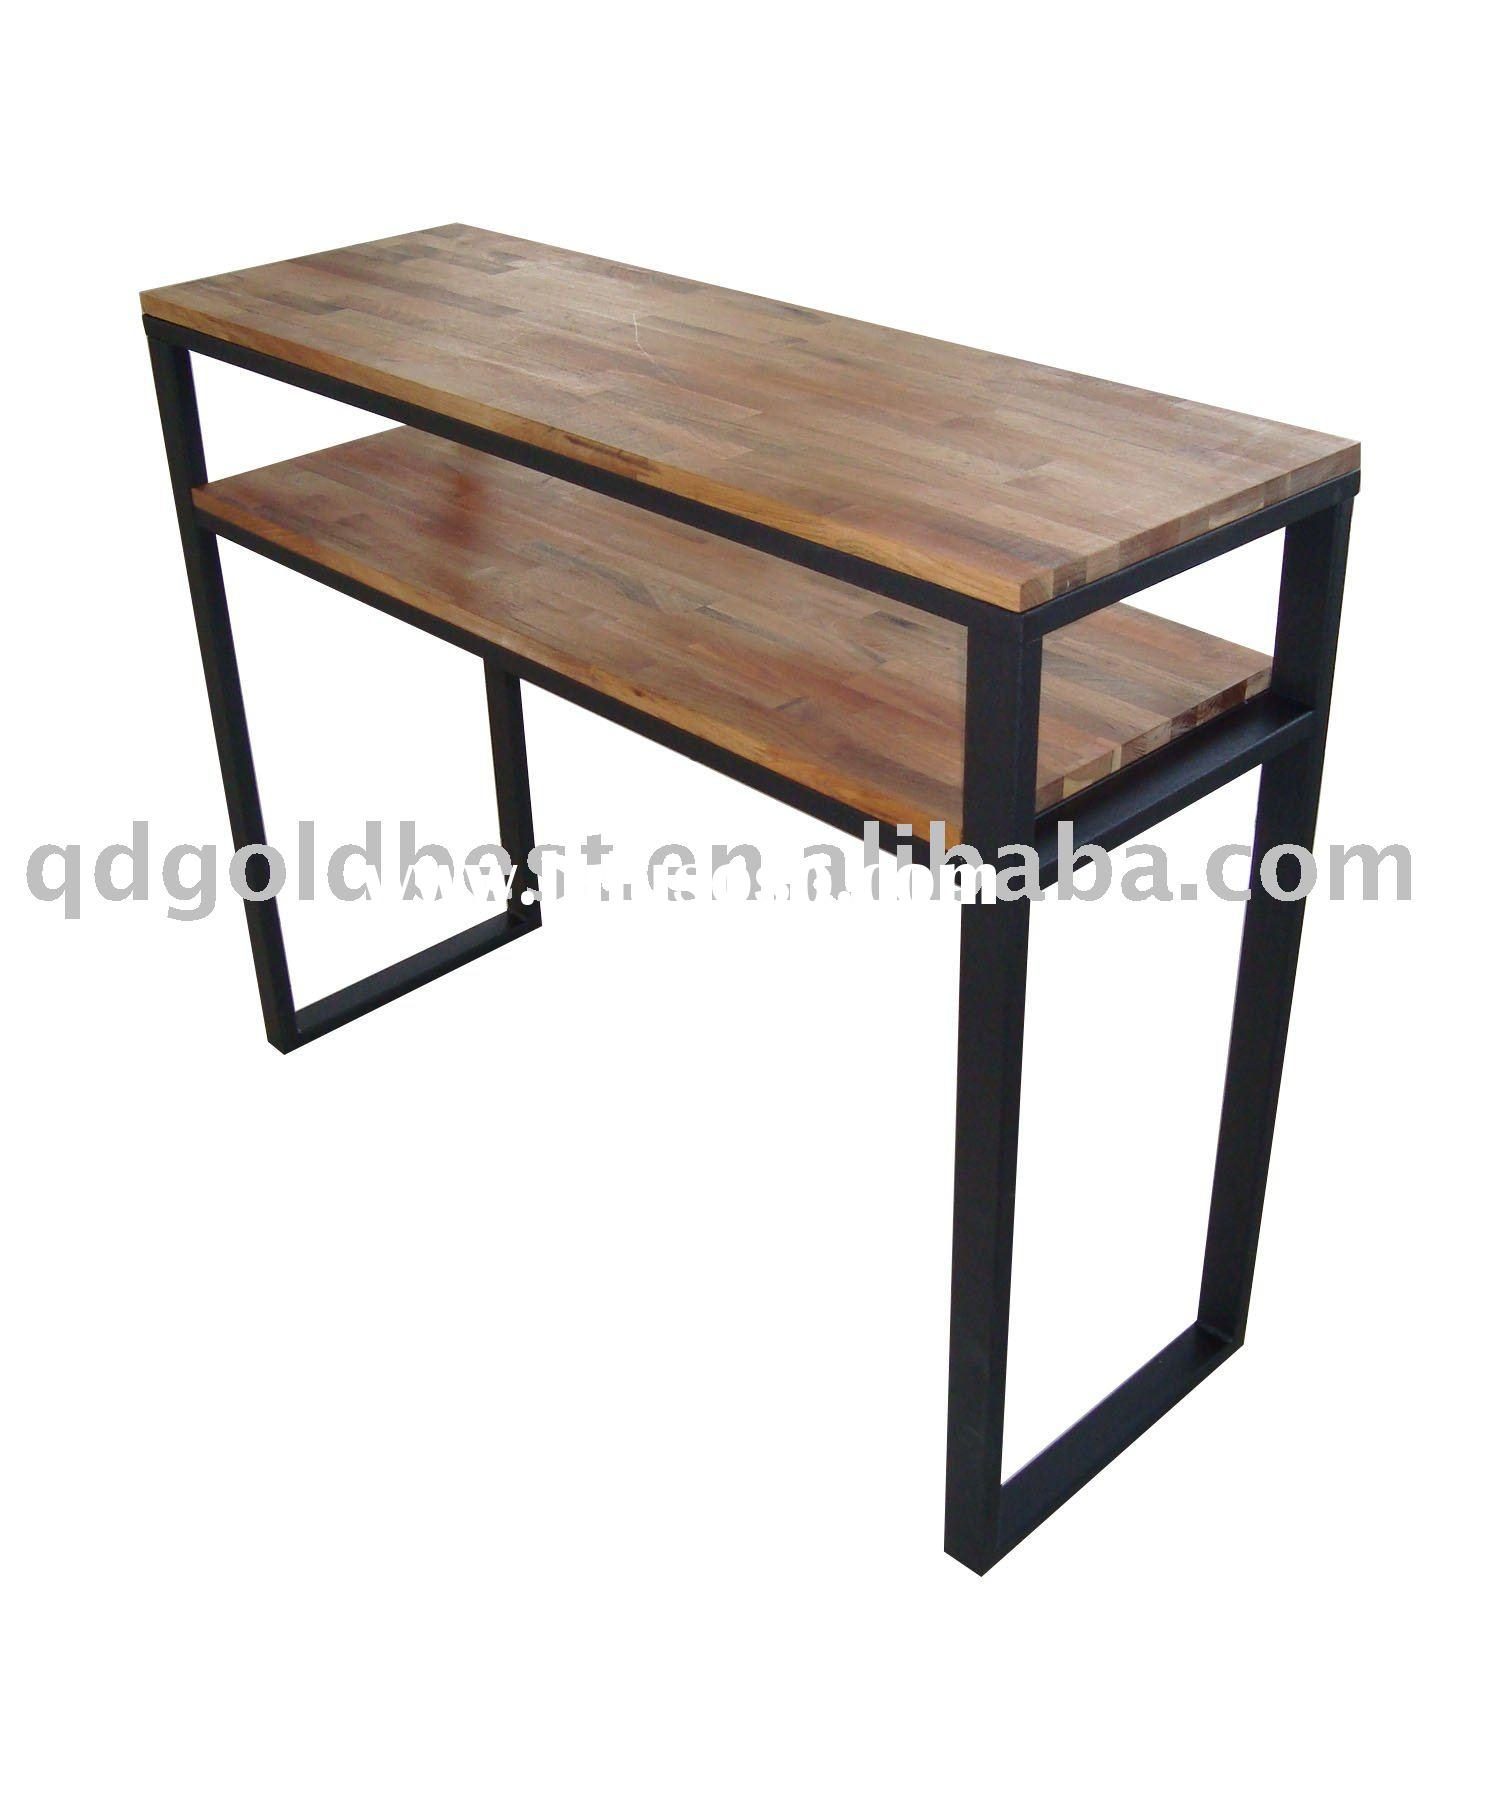 Folding Wall Table : Knockdownwoodywalltable from hahnconsultinggroup.com size 1500 x 1800 jpeg 126kB